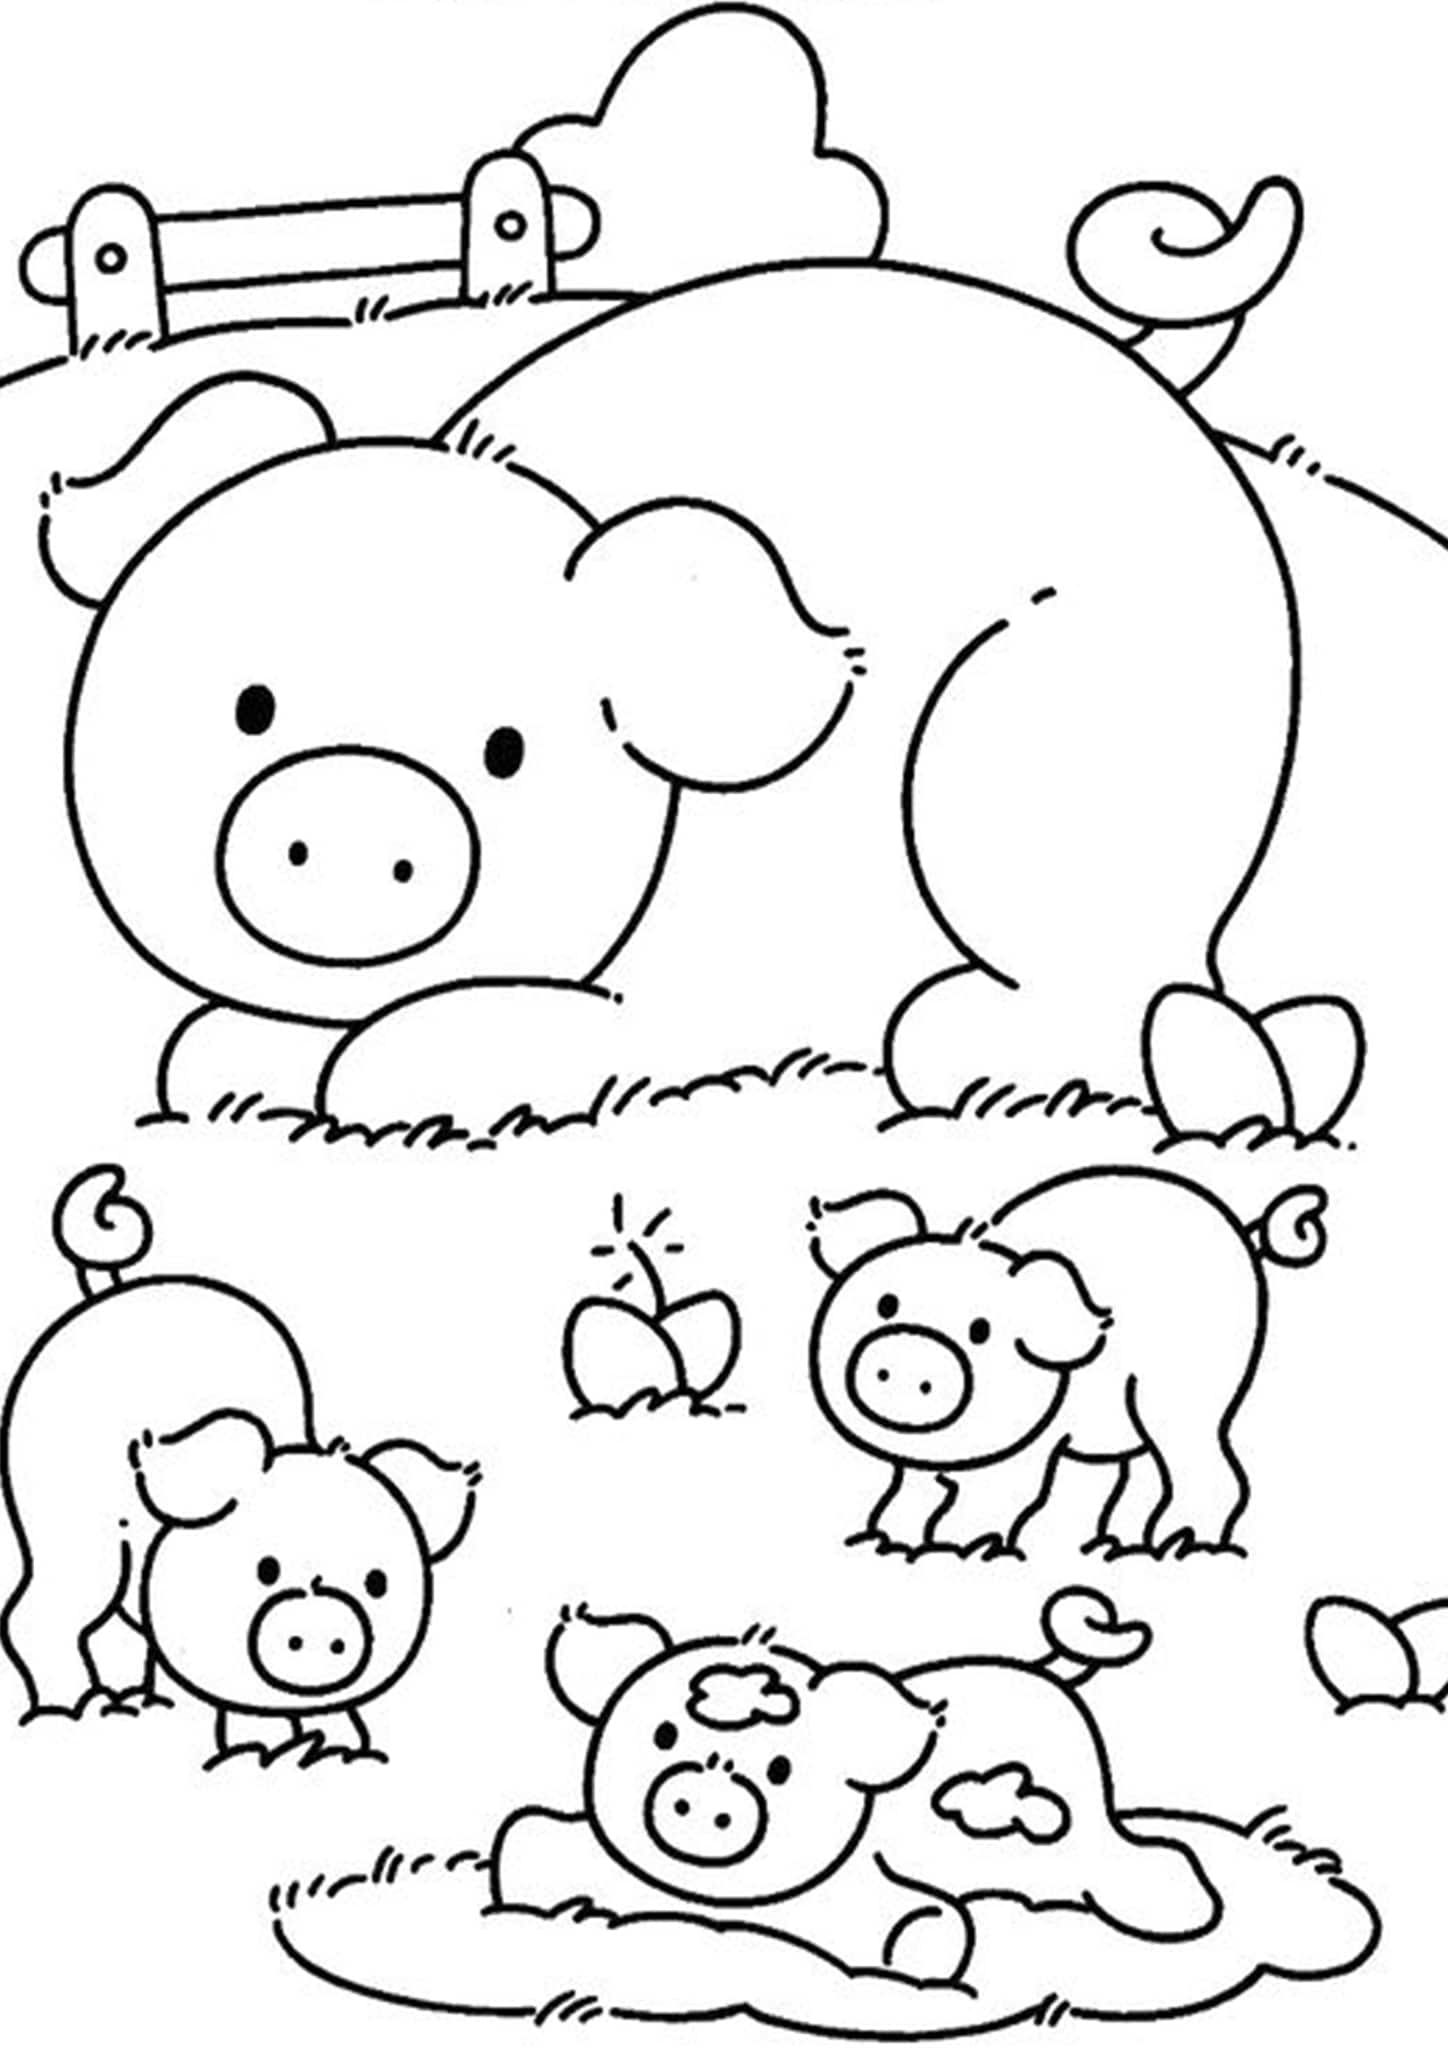 Free Easy To Print Pig Coloring Pages Farm Animal Coloring Pages Farm Coloring Pages Animal Coloring Pages